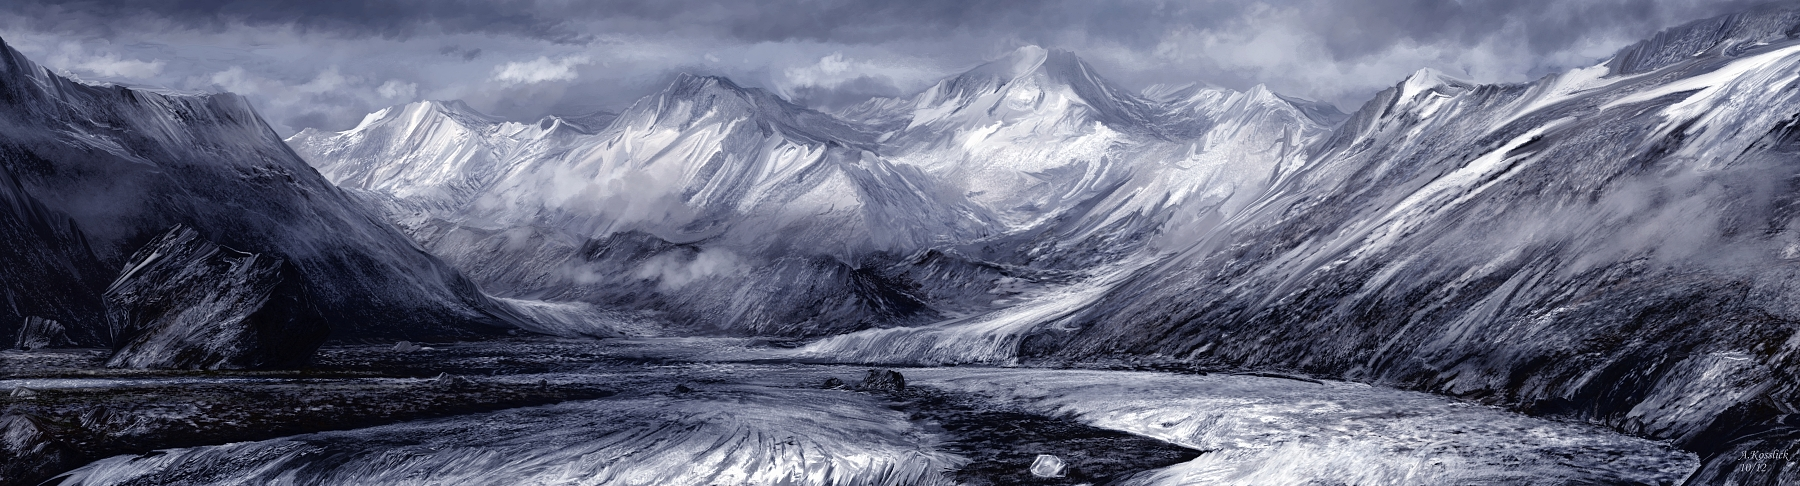 glacial highway attempt 1 by andrekosslick